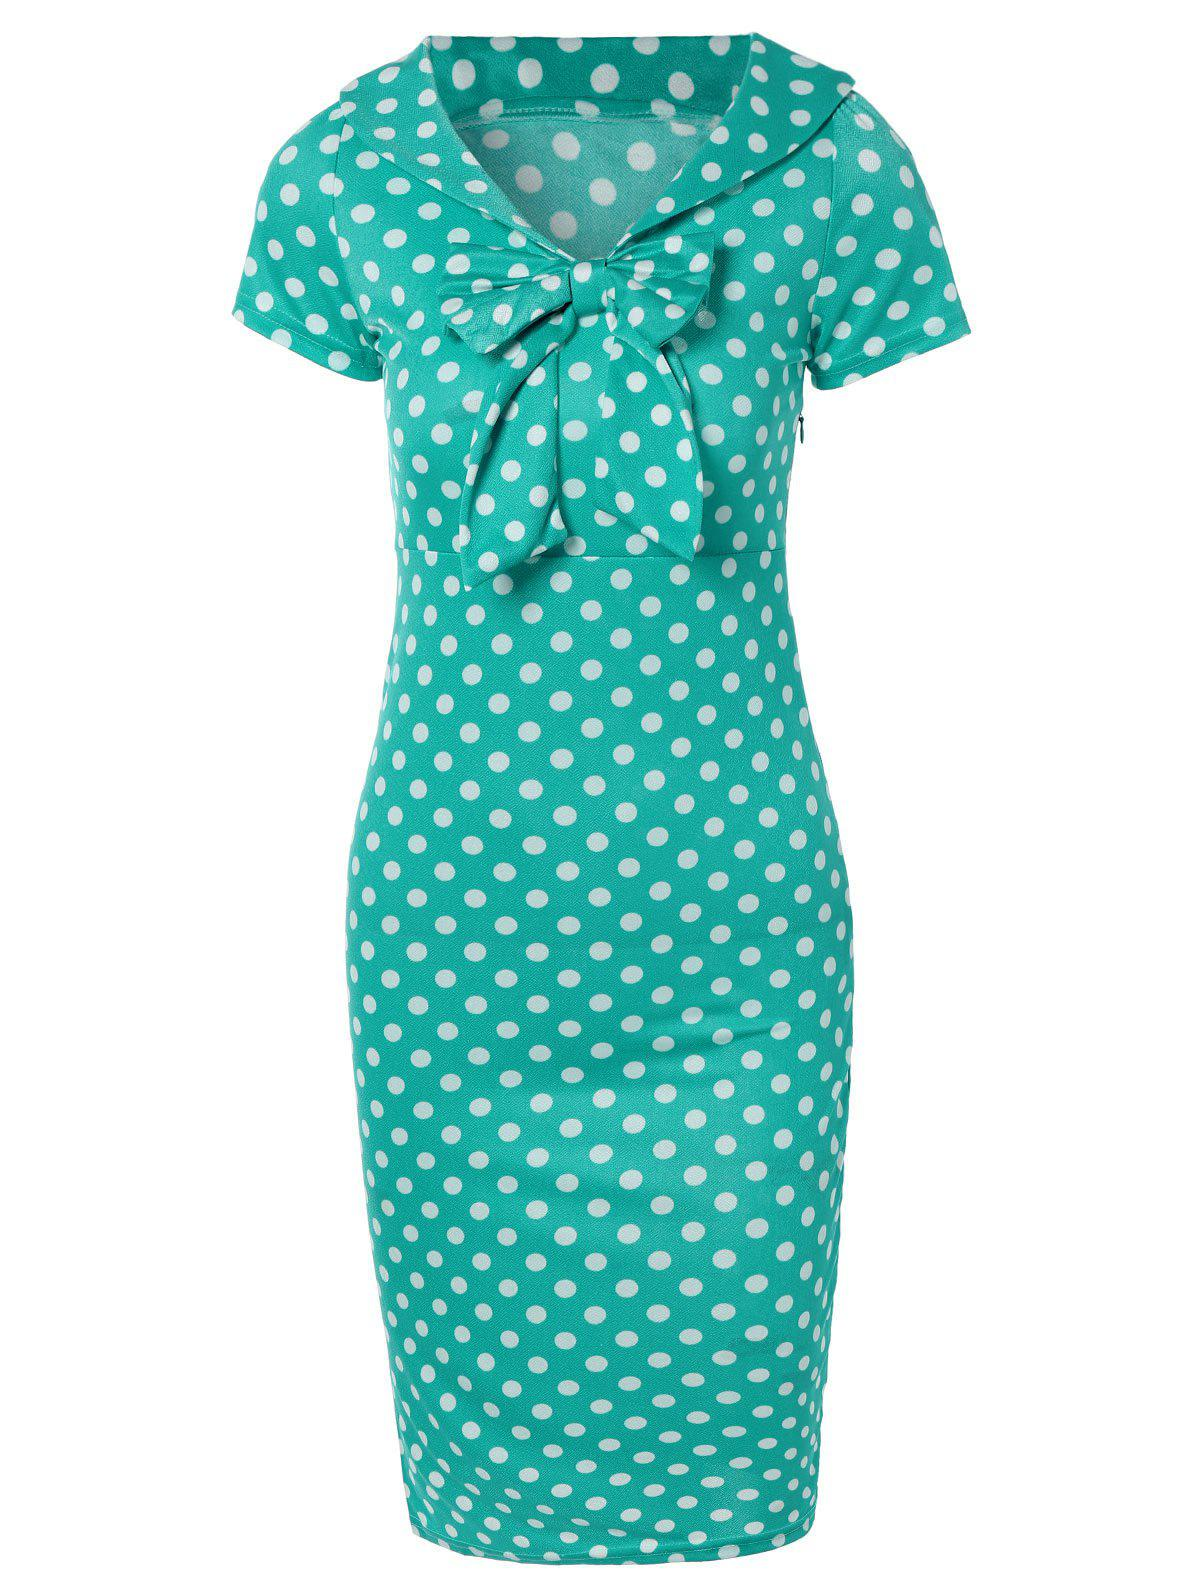 Preppy Bow Polka Dot Bodycon Dress - GREEN 2XL